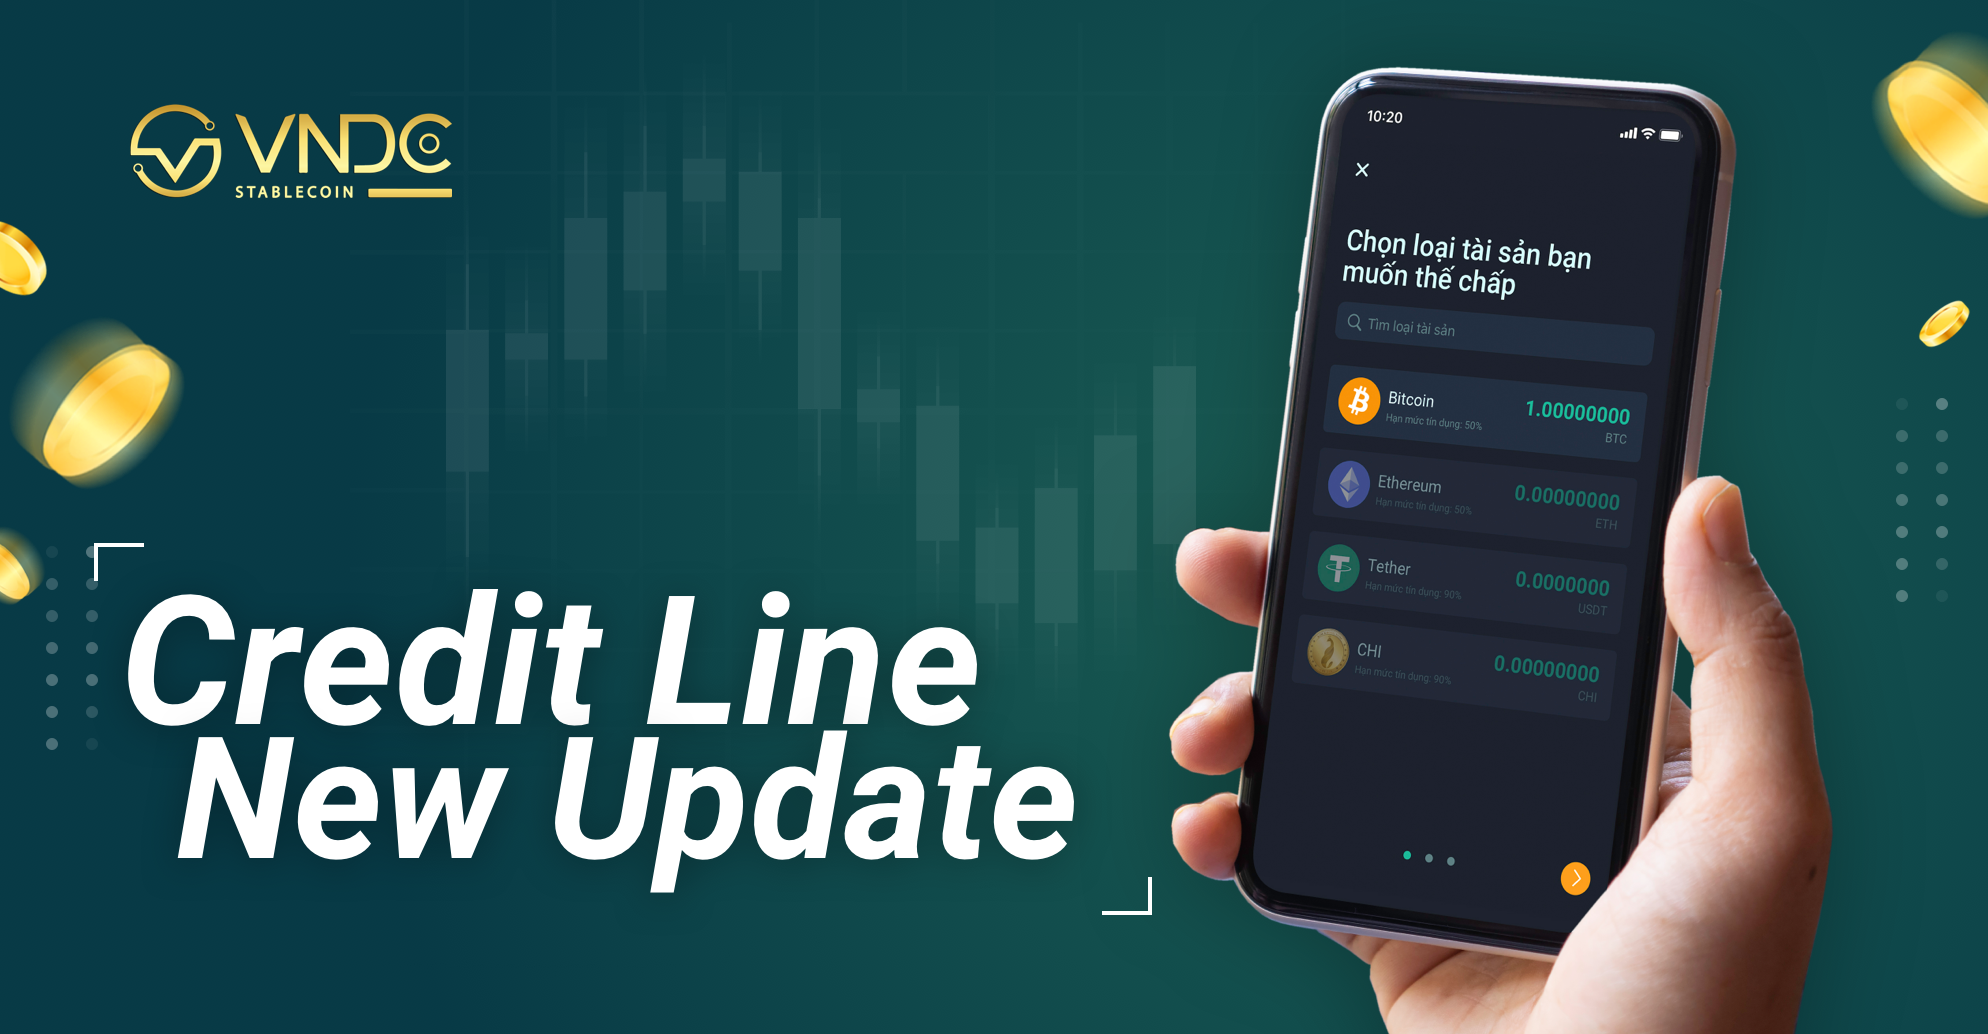 Announcement: Credit Line Update New Version